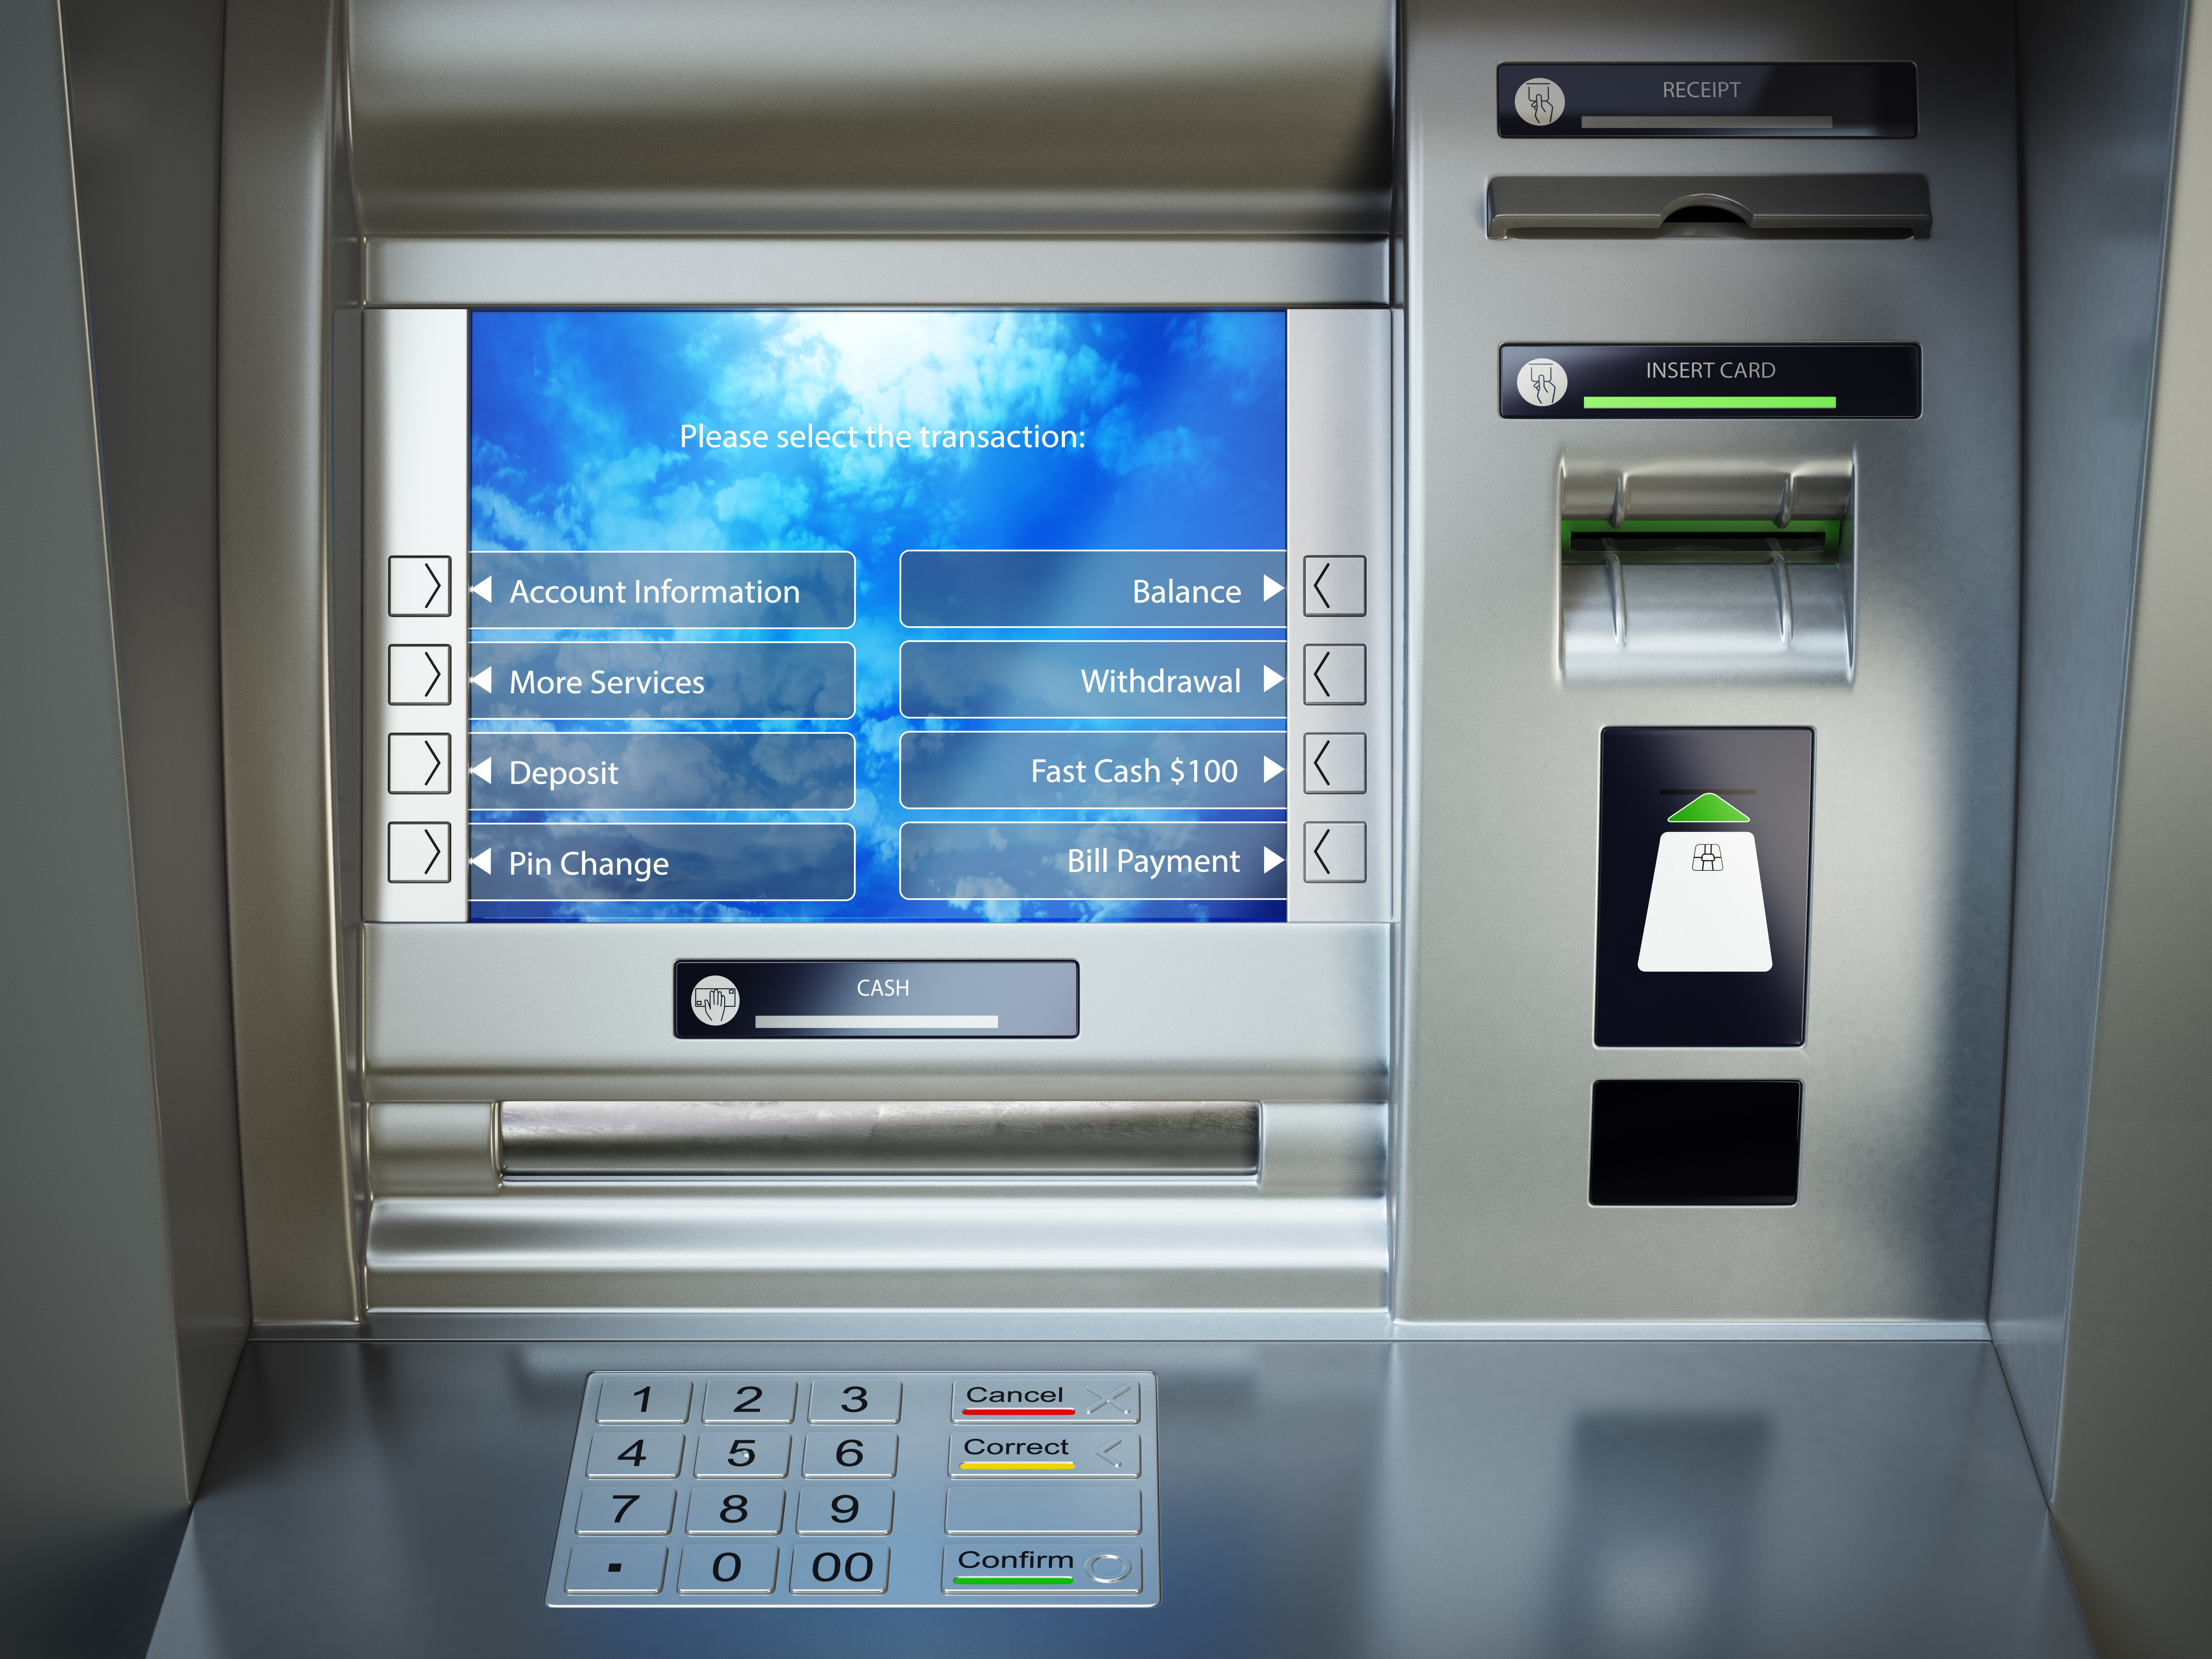 Image-Based Testing for ATMs and New Device Categories